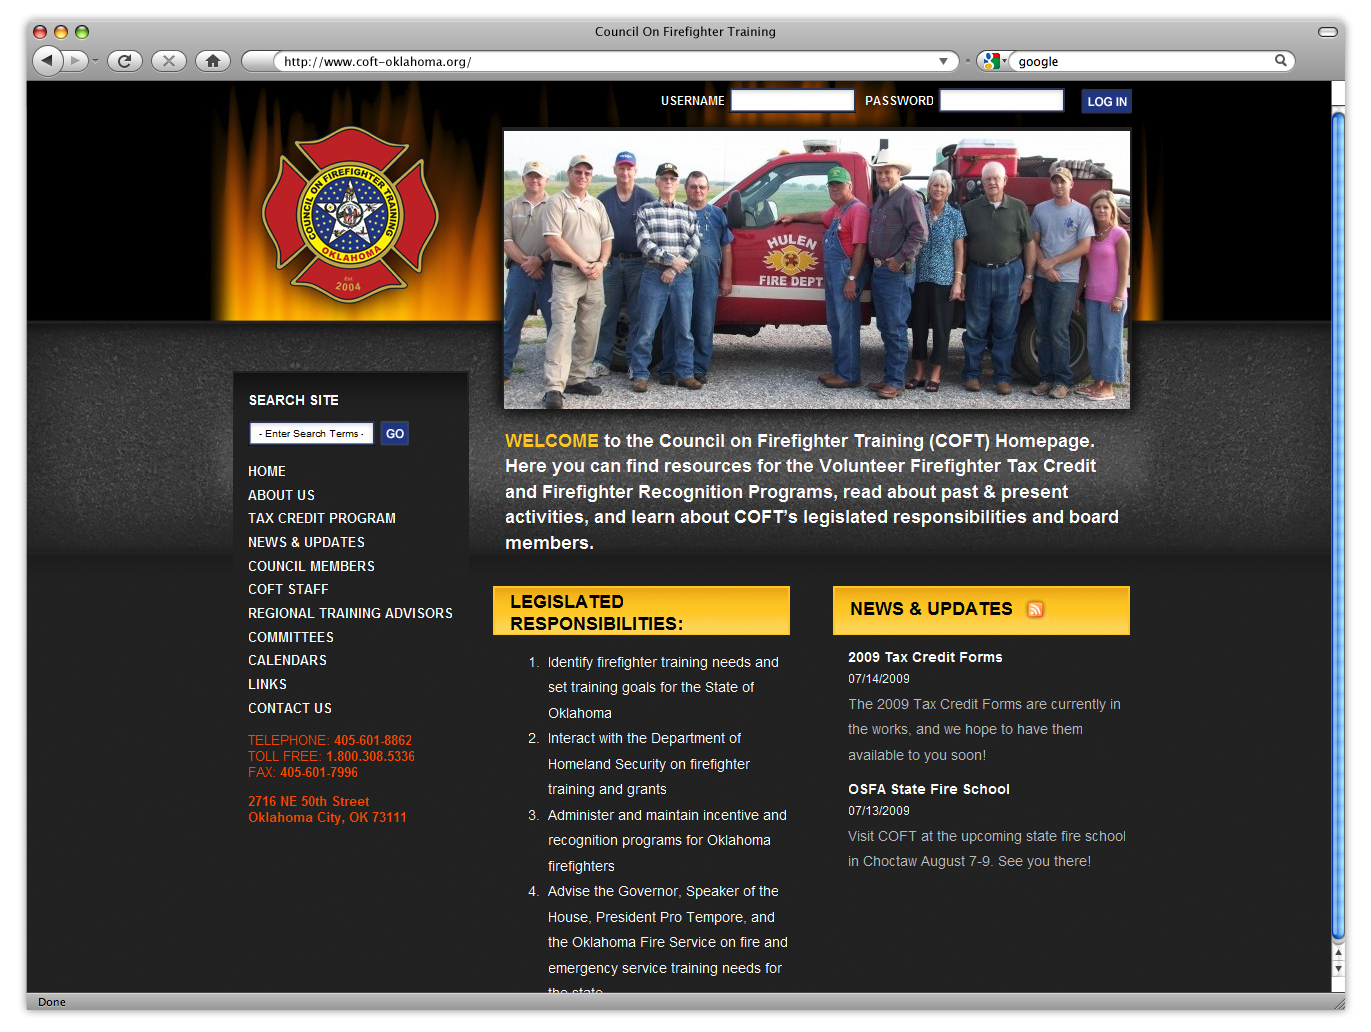 Council for Firefighter Training Website: after